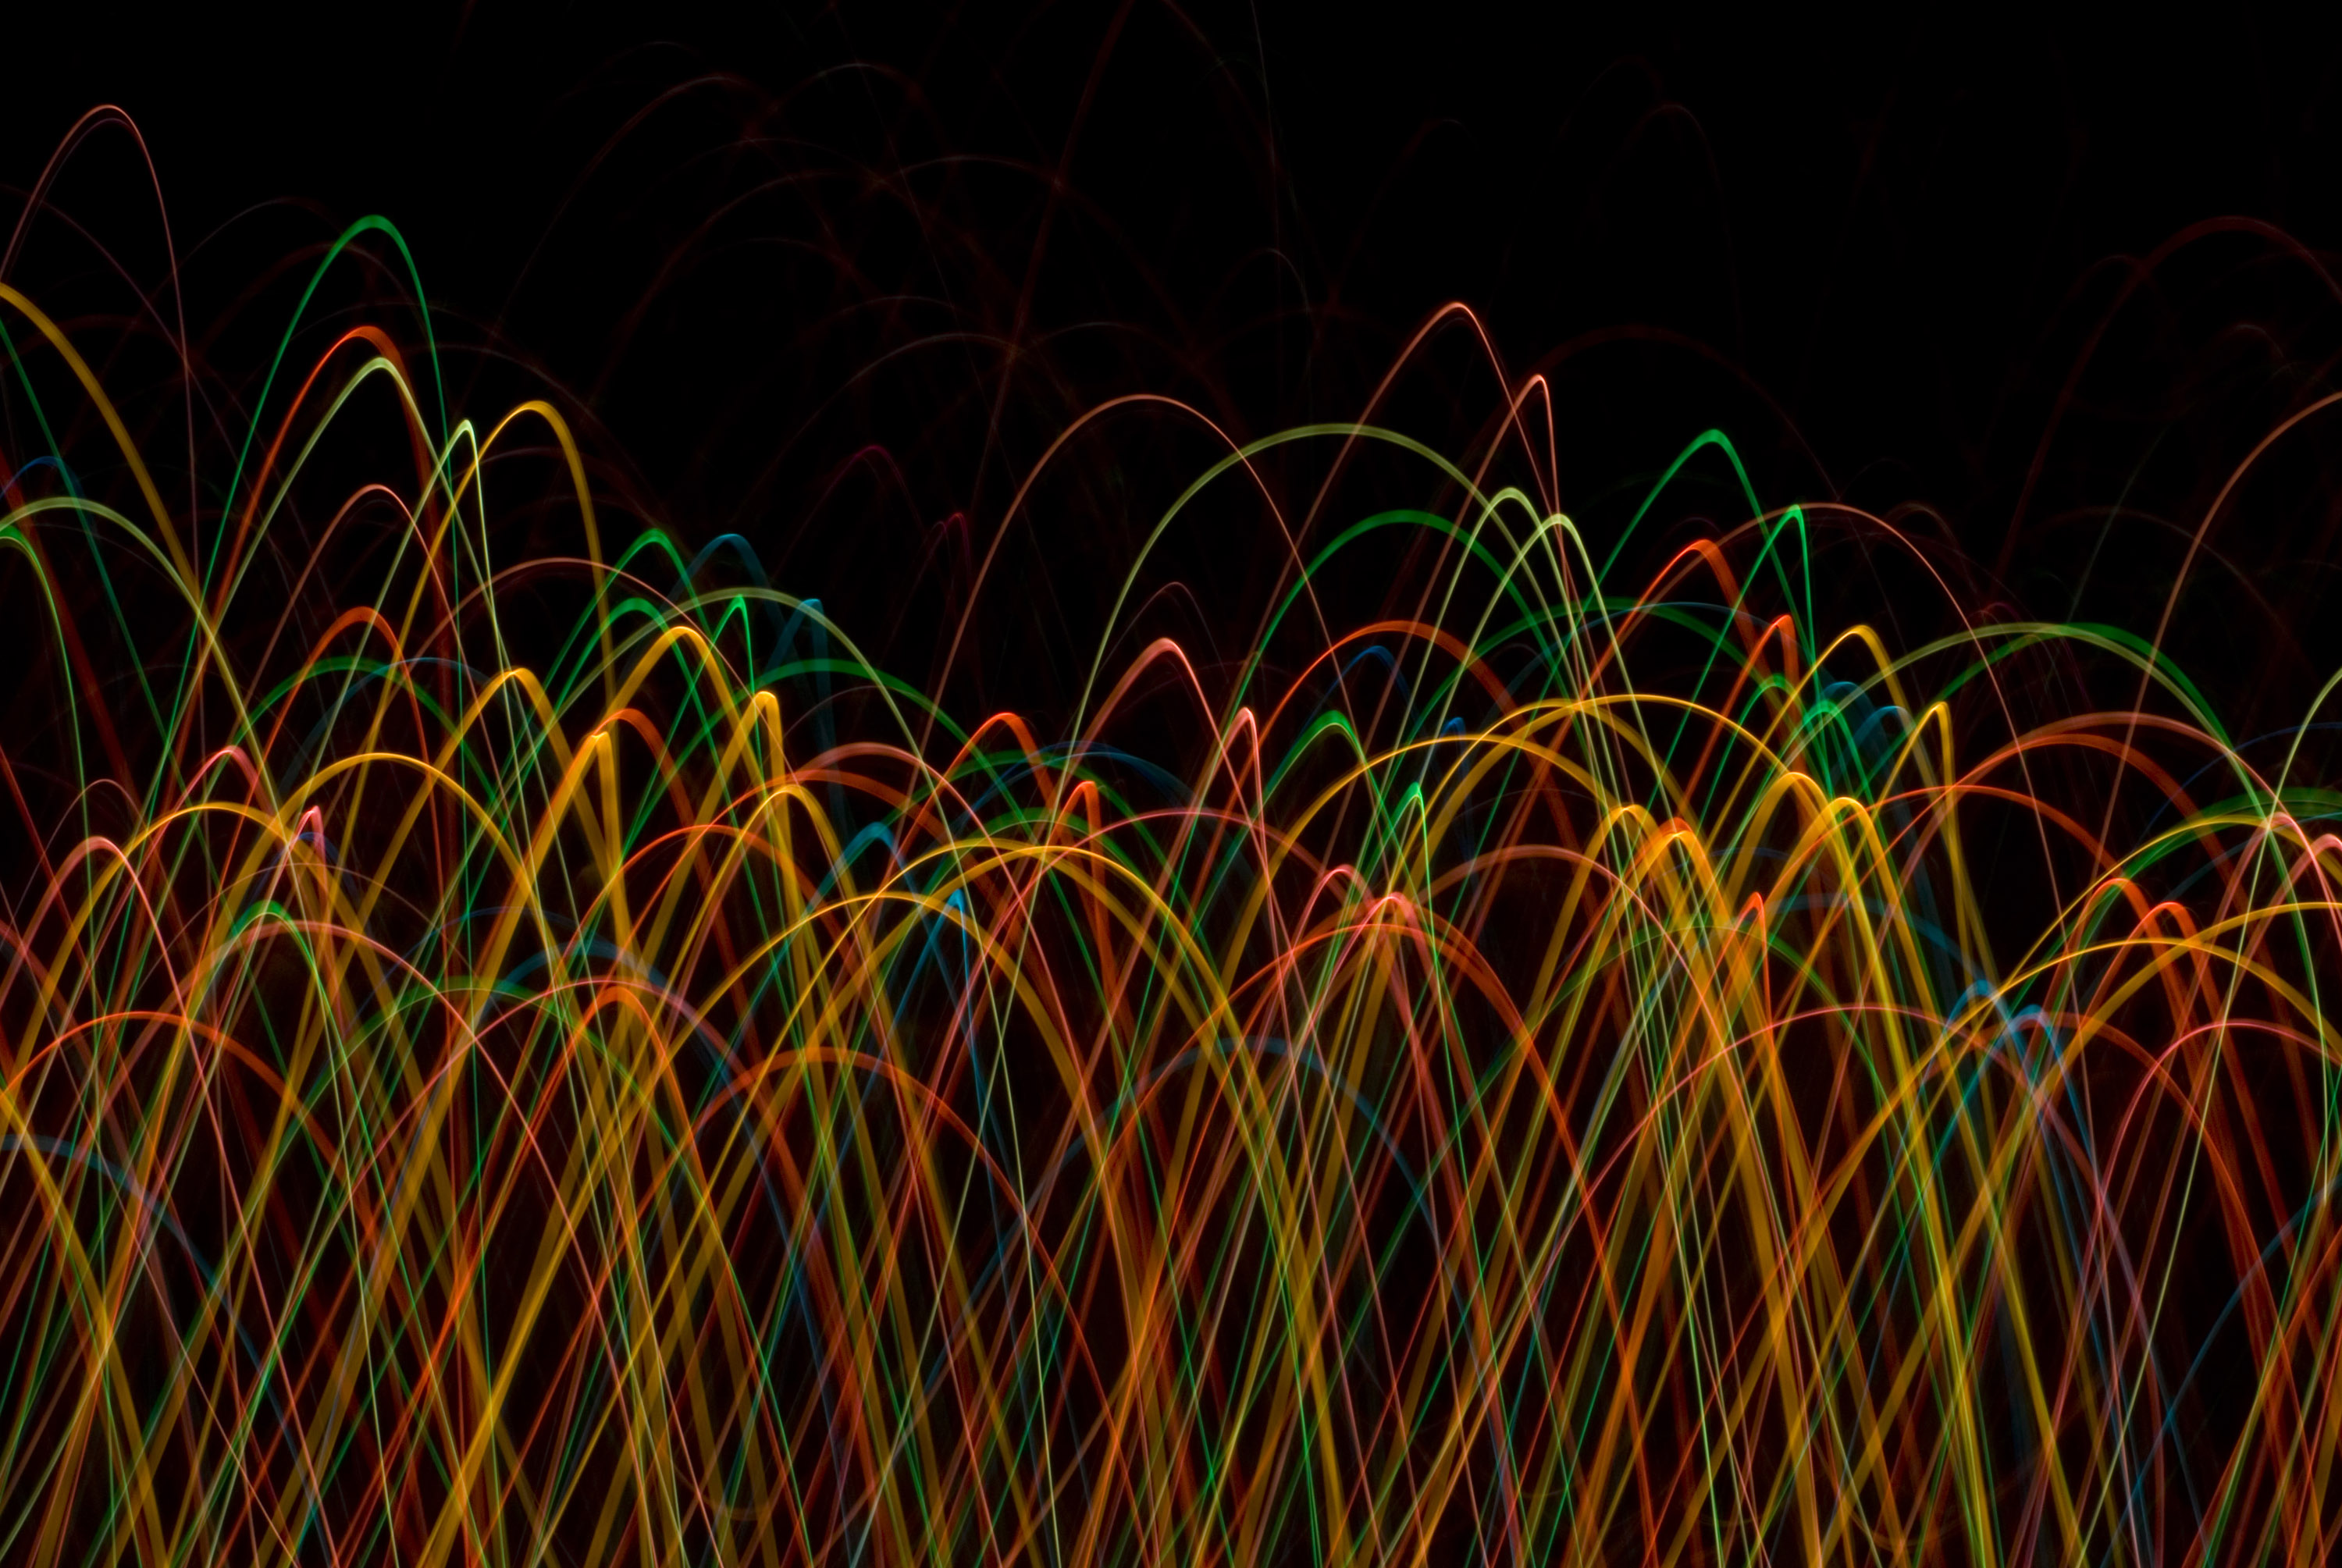 abstract background of red orange and green light trails